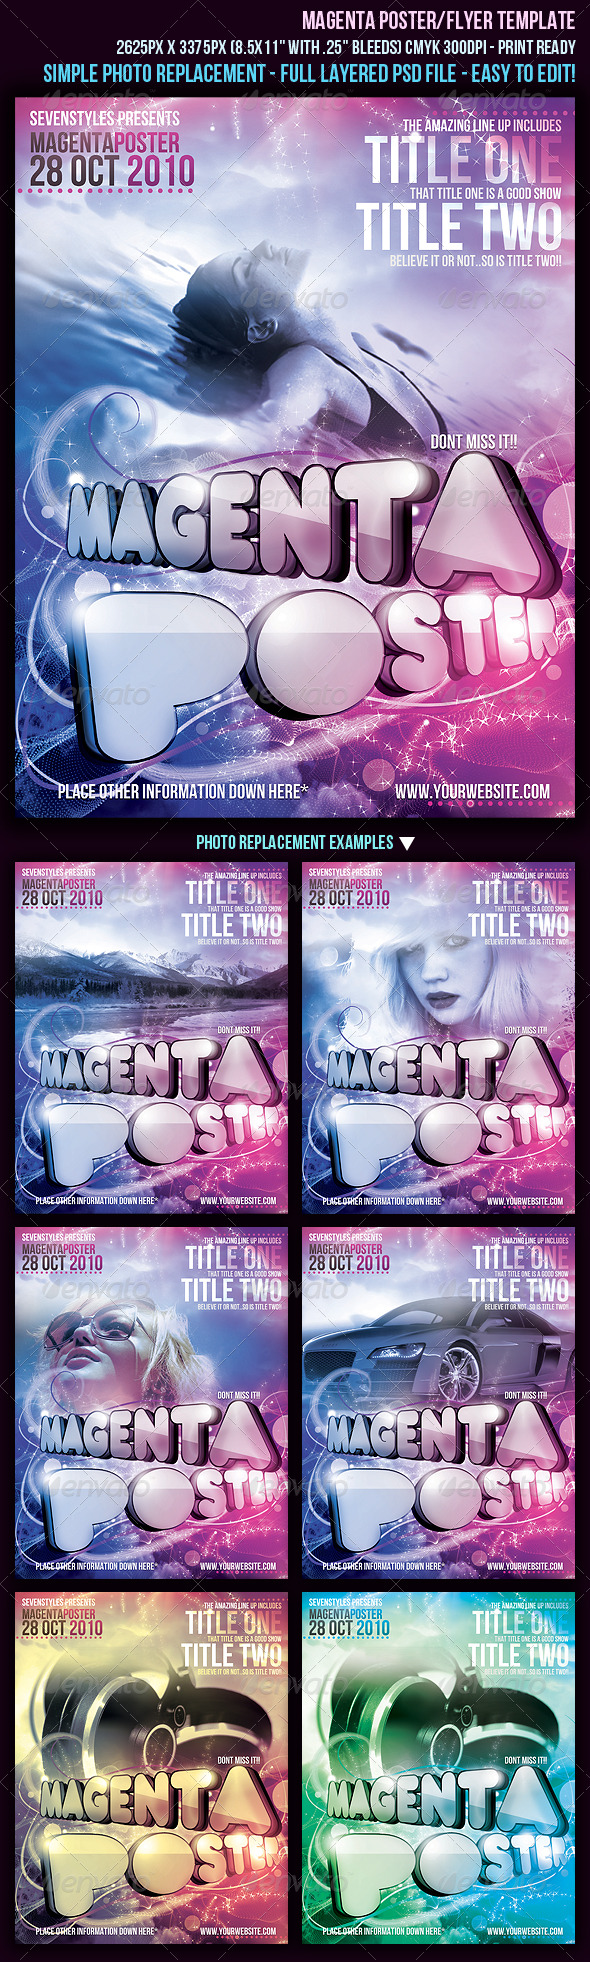 Magenta Poster/Flyer Template - Clubs &amp; Parties Events